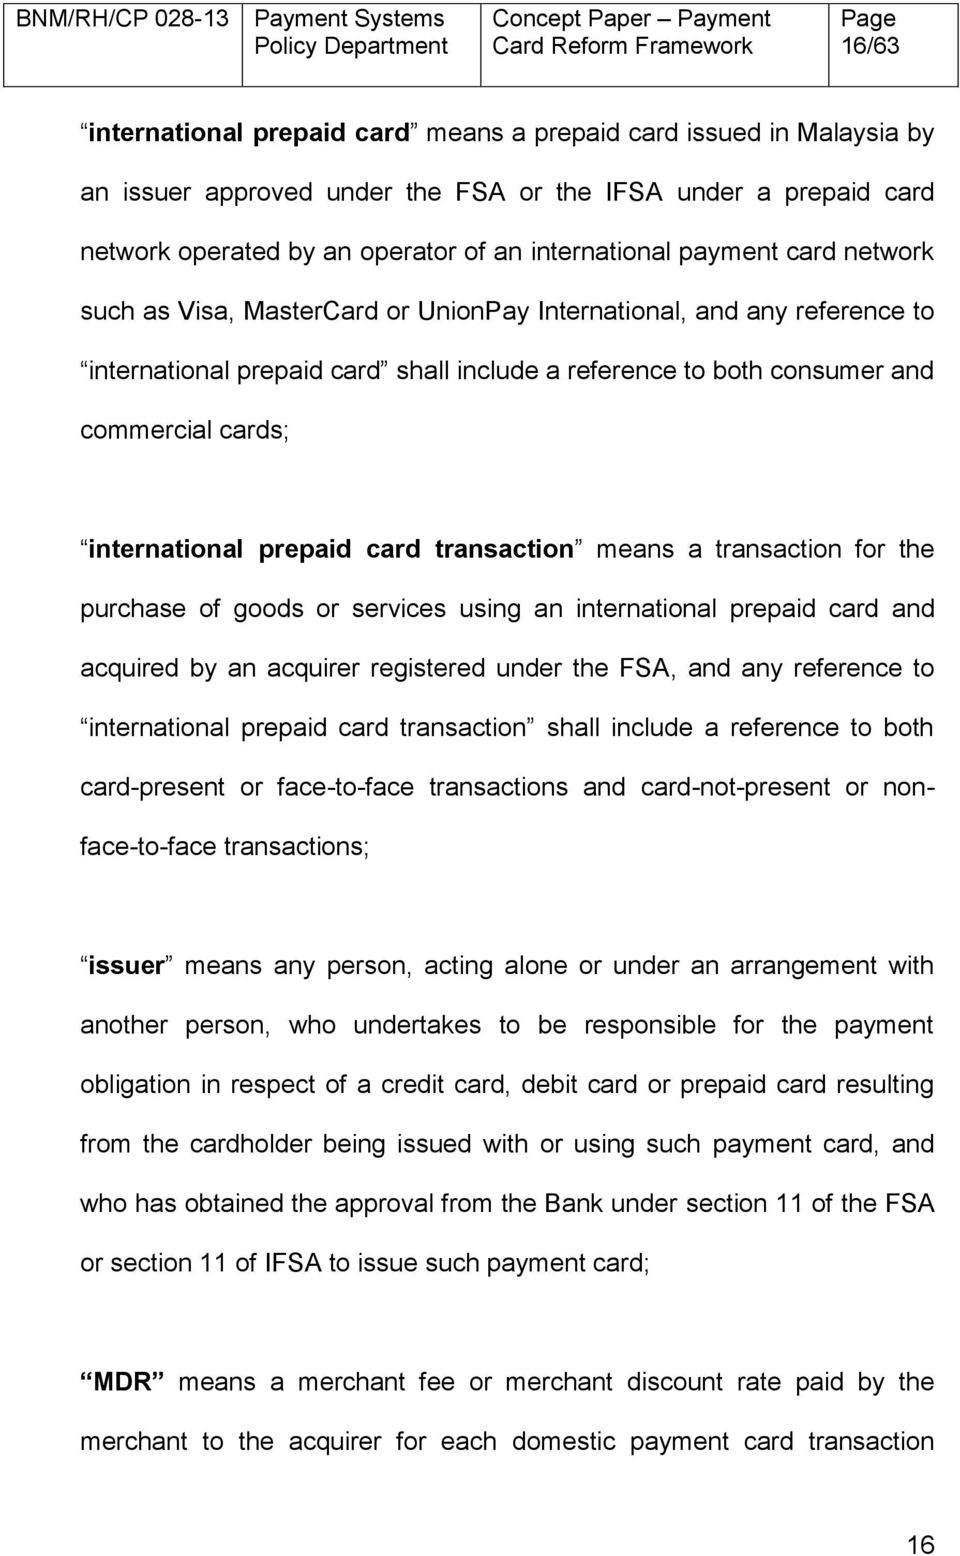 prepaid card transaction means a transaction for the purchase of goods or services using an international prepaid card and acquired by an acquirer registered under the FSA, and any reference to